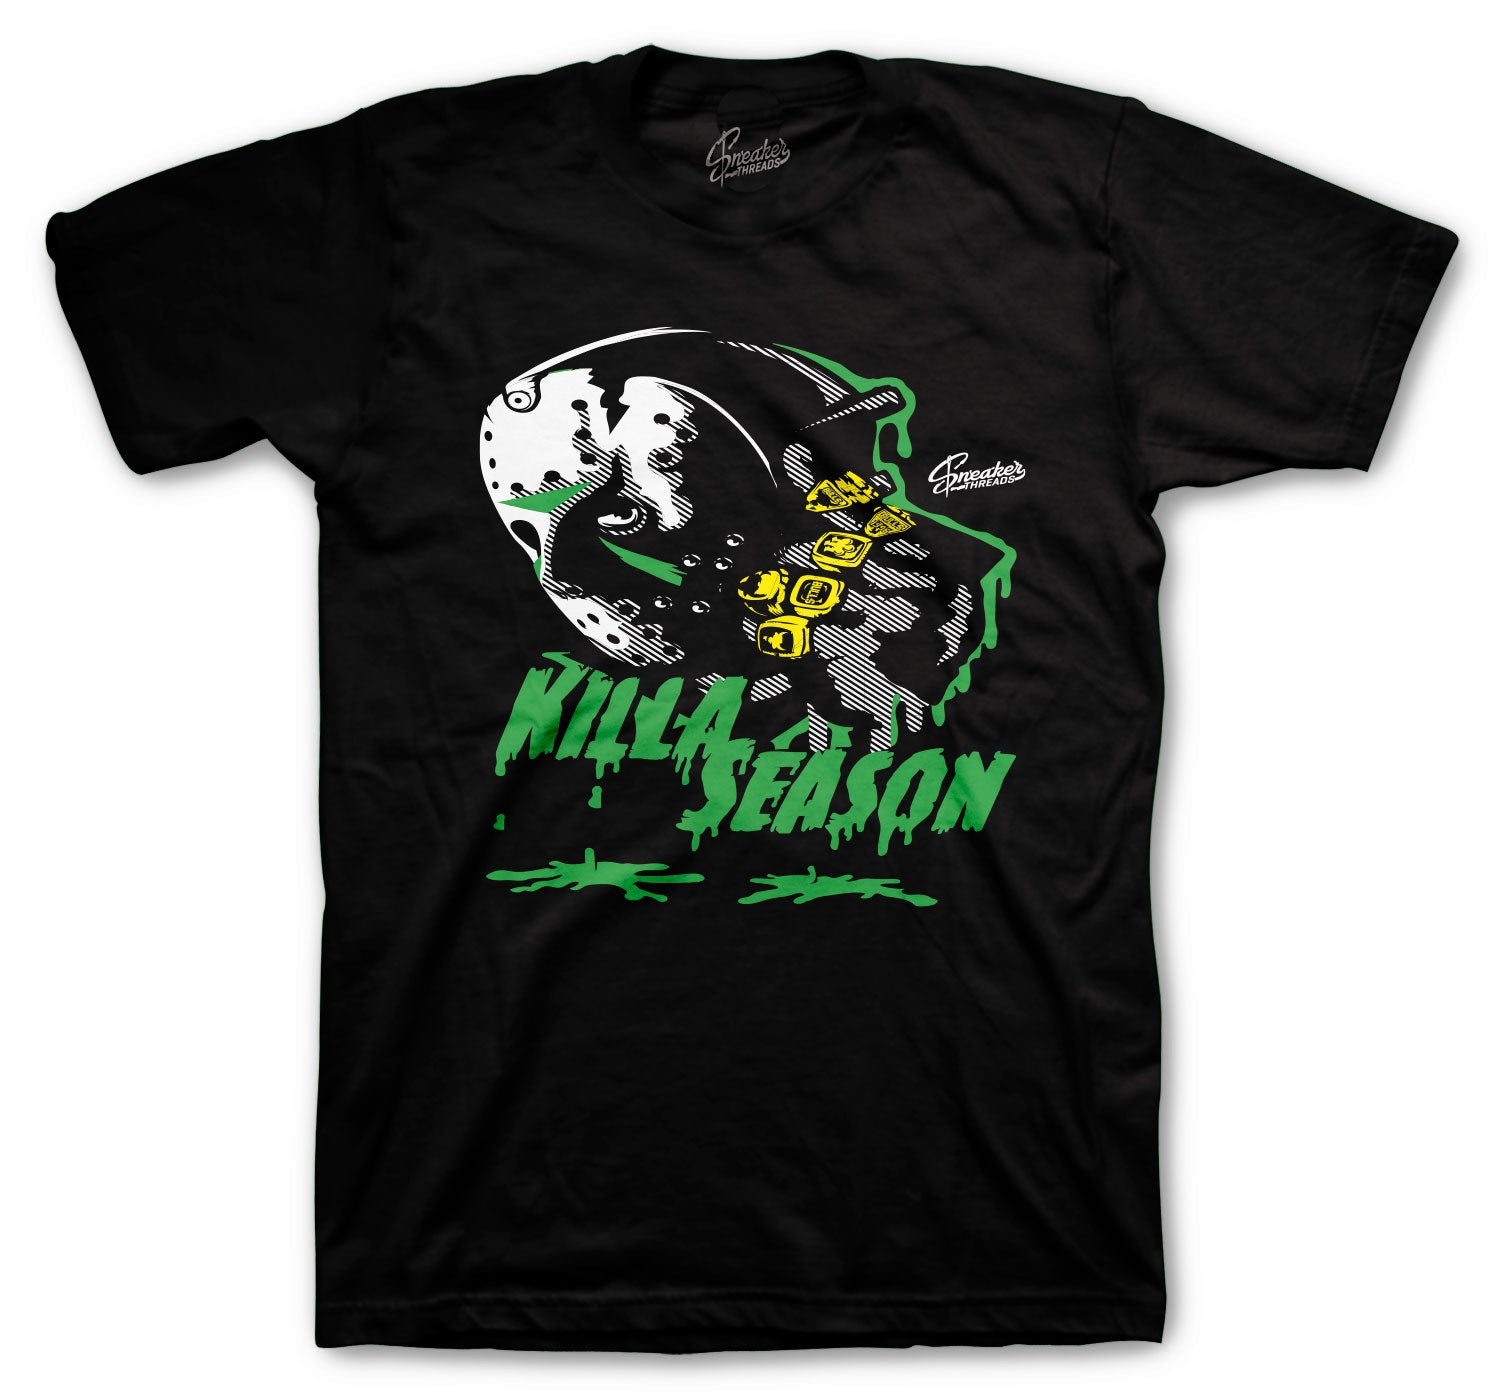 Jordan 13 Lucky Green Killa Season Shirt